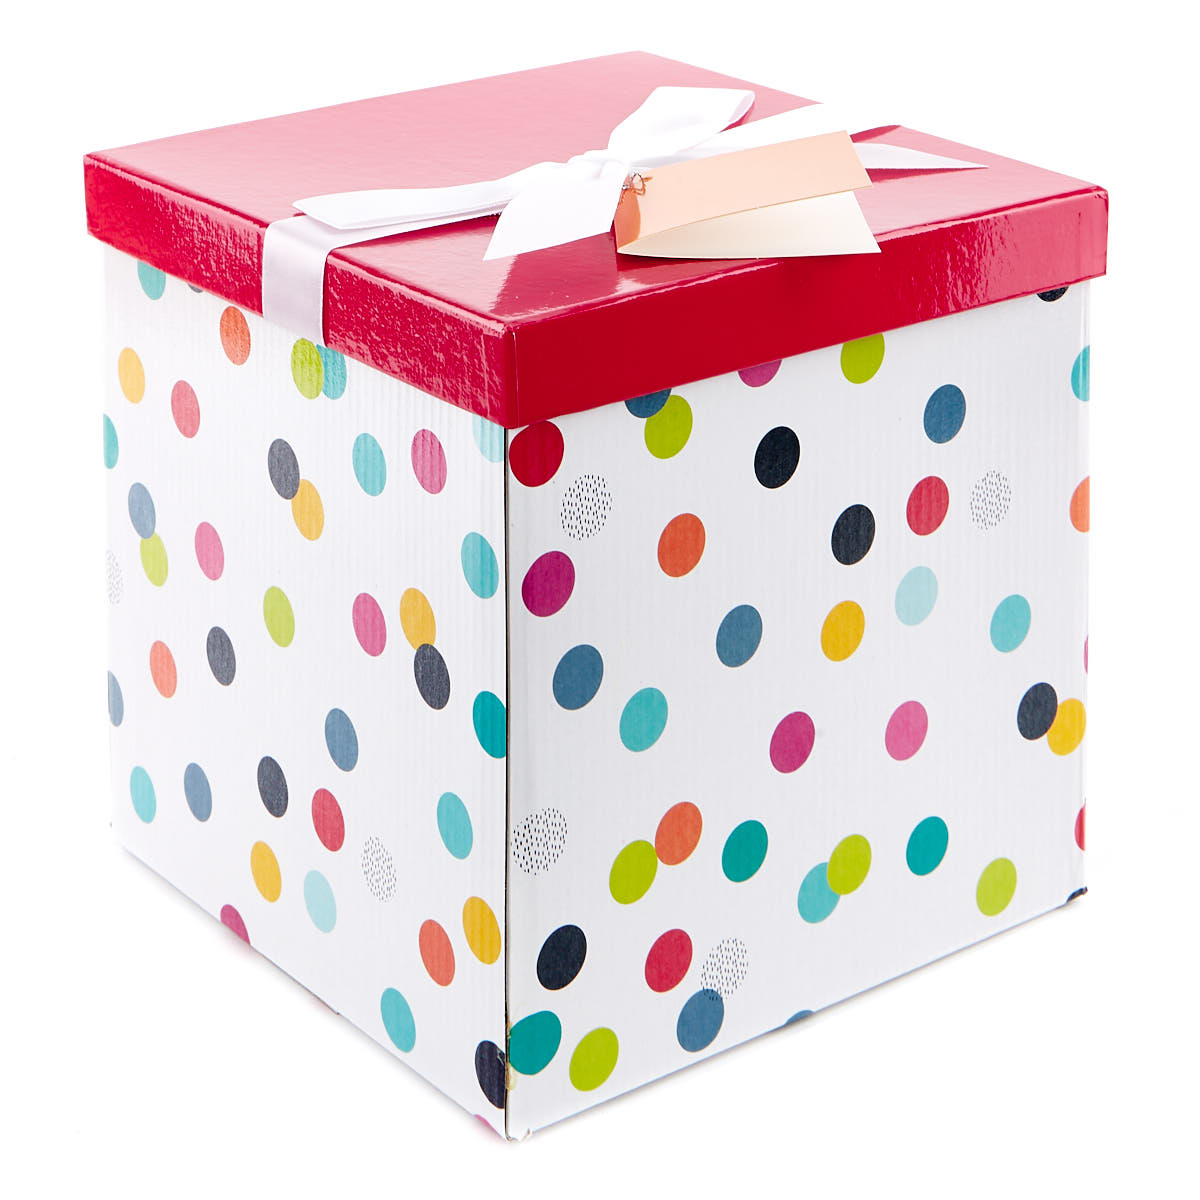 Large Flat-Pack Gift Box - Red & White With Spots